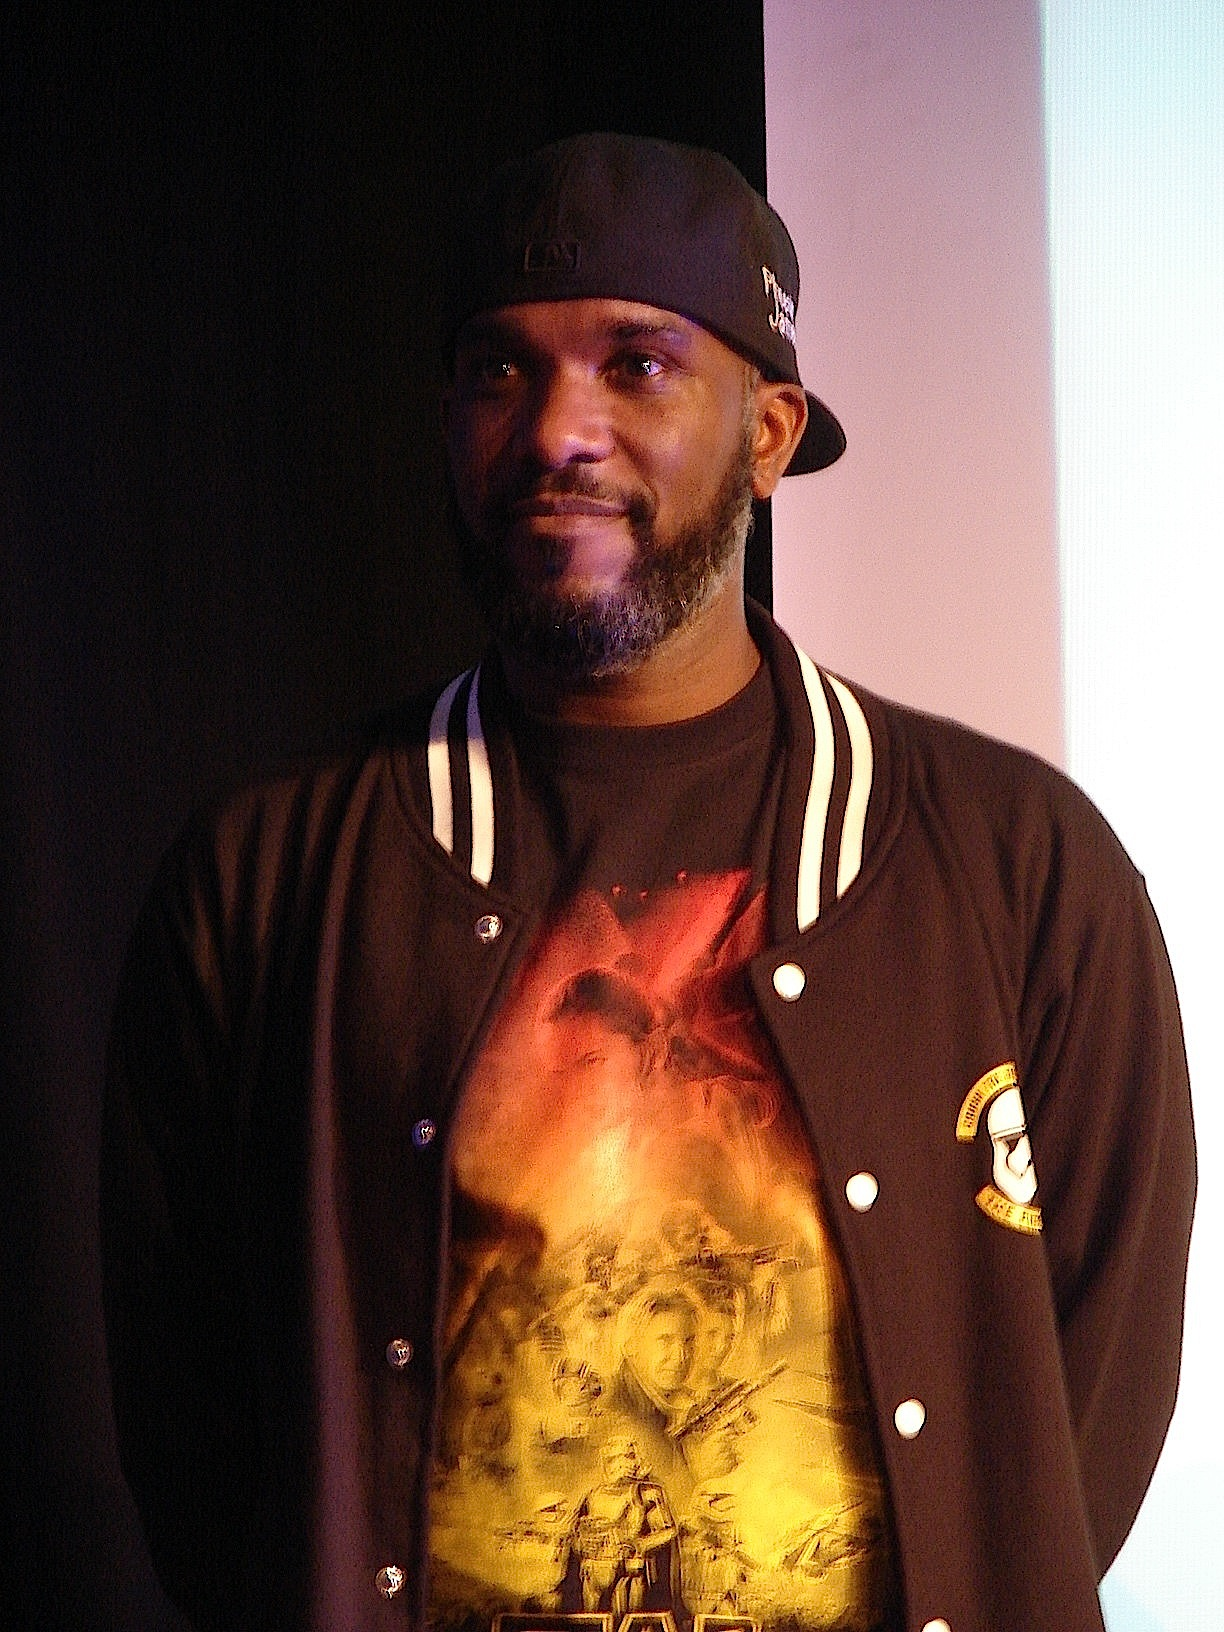 Stormtrooper Actor Phoenix James at ASFA Star Wars Convention in Amélie les Bains in South of France - Photo by Virginie Maurille 49